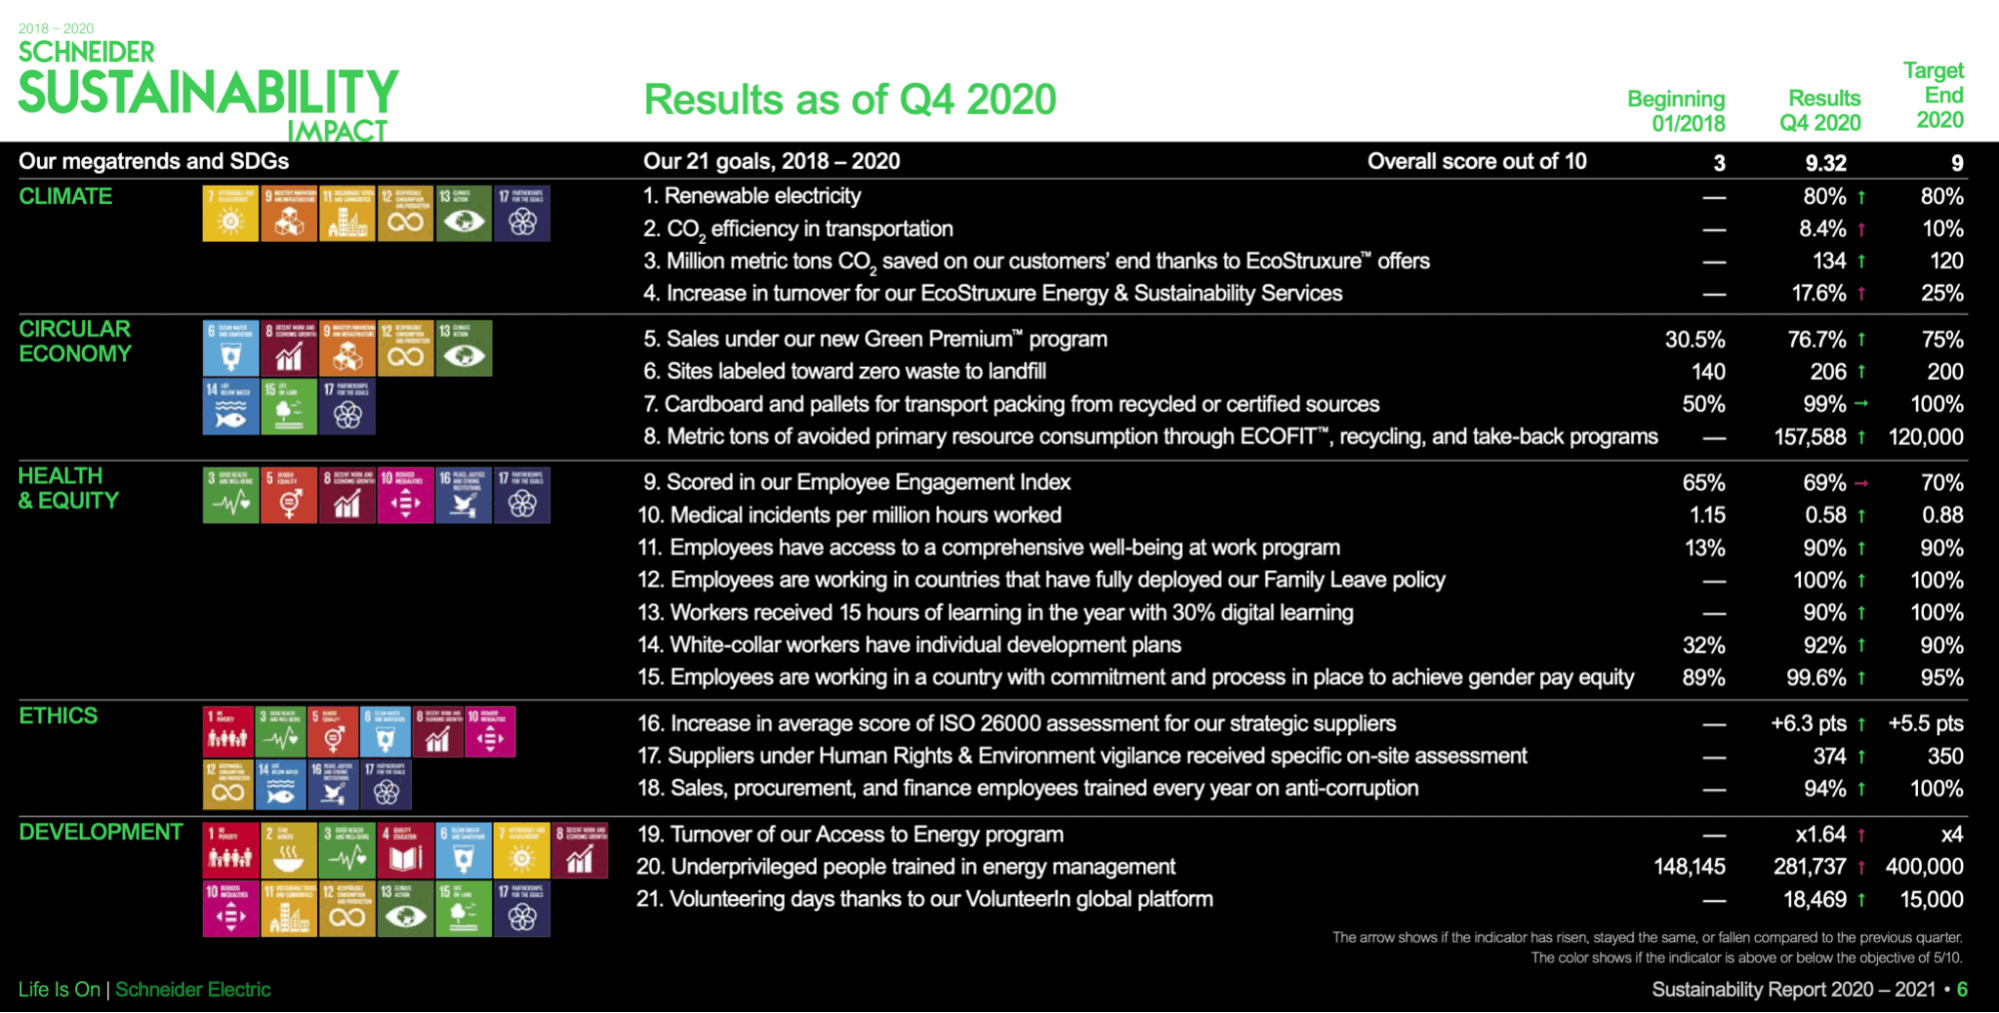 Results 2018-2020 (as of Q4 2020). Source: Schneider Electric